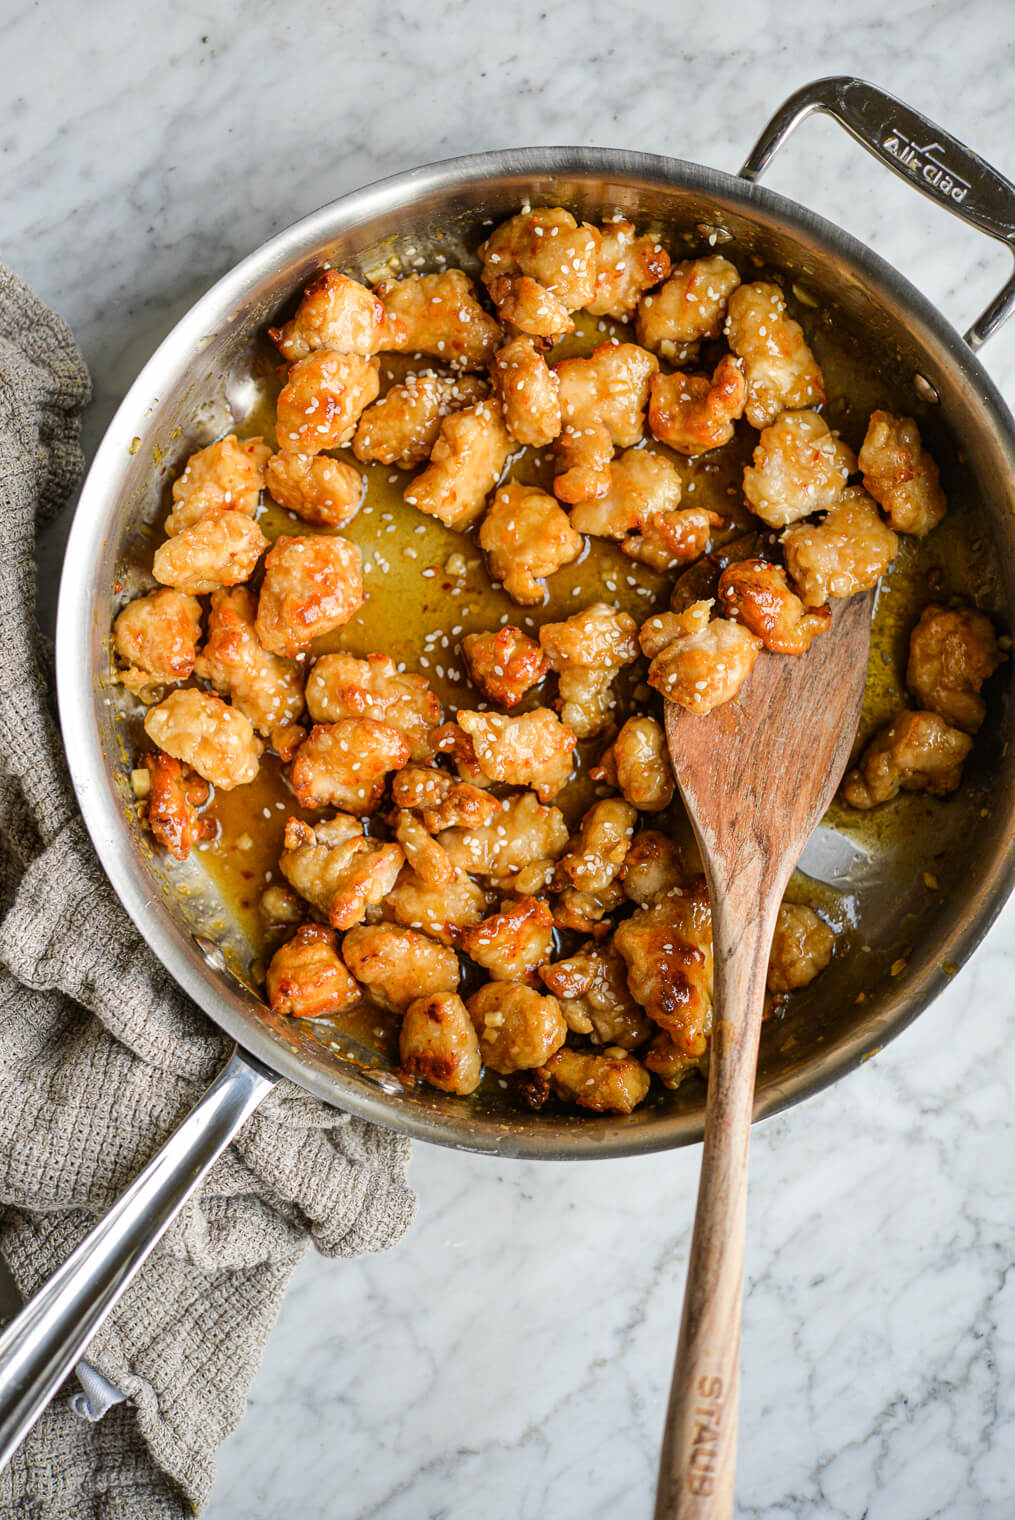 general tso's chicken in a stainless pan with a wooden spoon on a marble surface